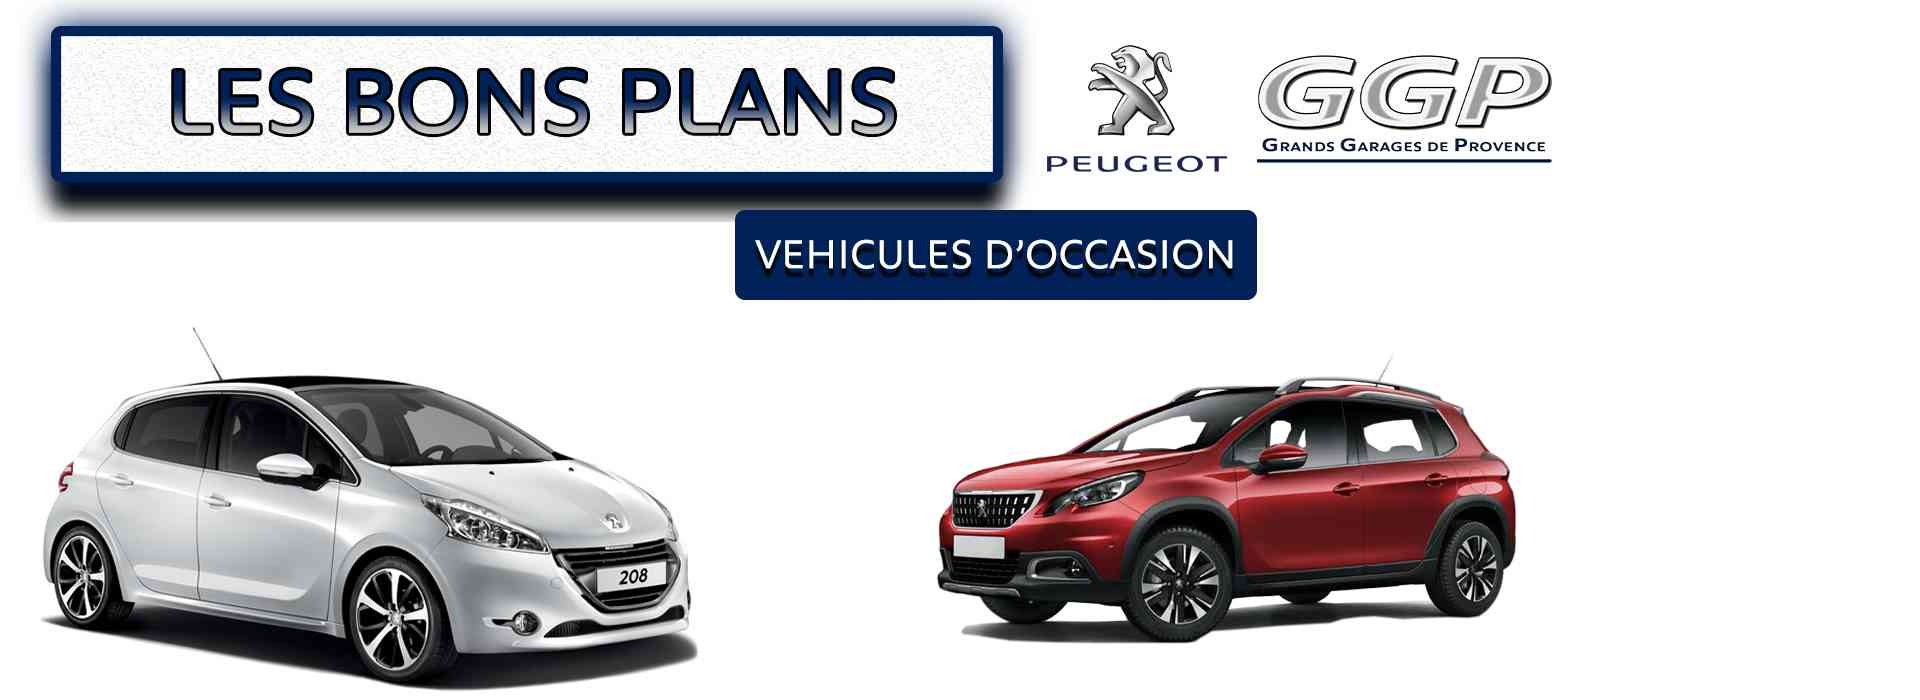 promotion voiture d 39 occasion peugeot aix en provence. Black Bedroom Furniture Sets. Home Design Ideas